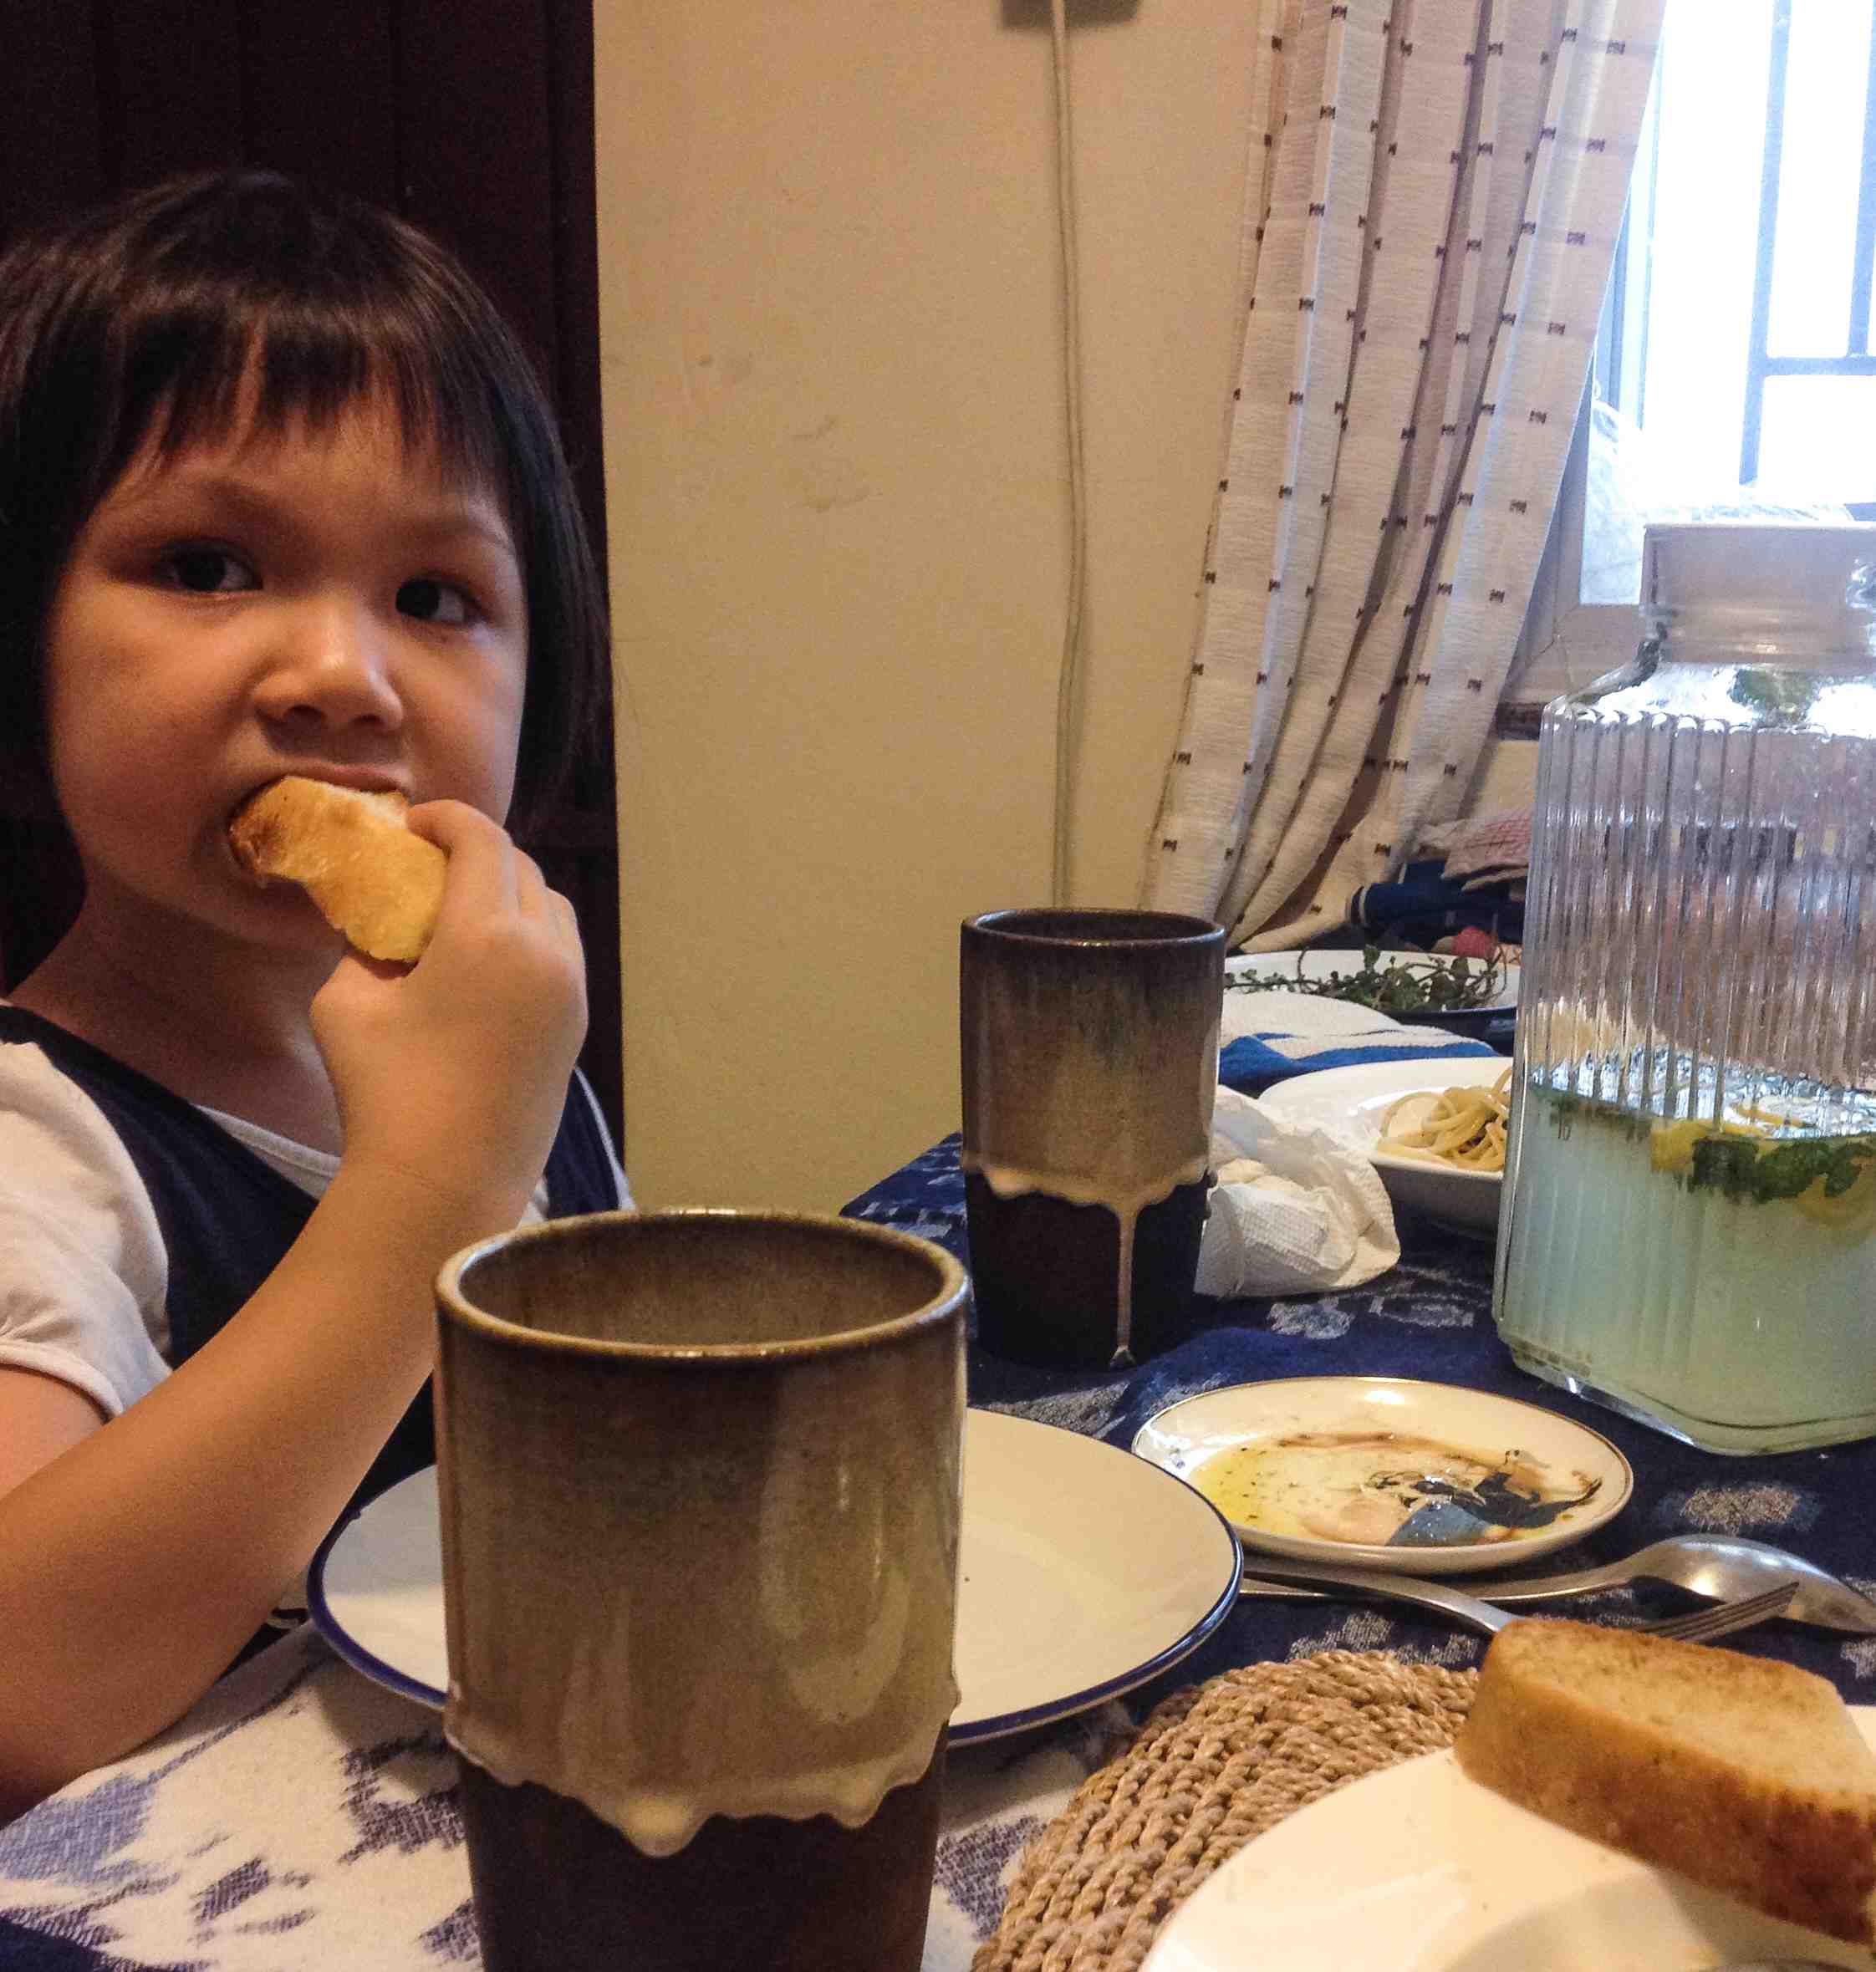 Alicia, my niece, is loving her bread. :) Such a satisfying moment.